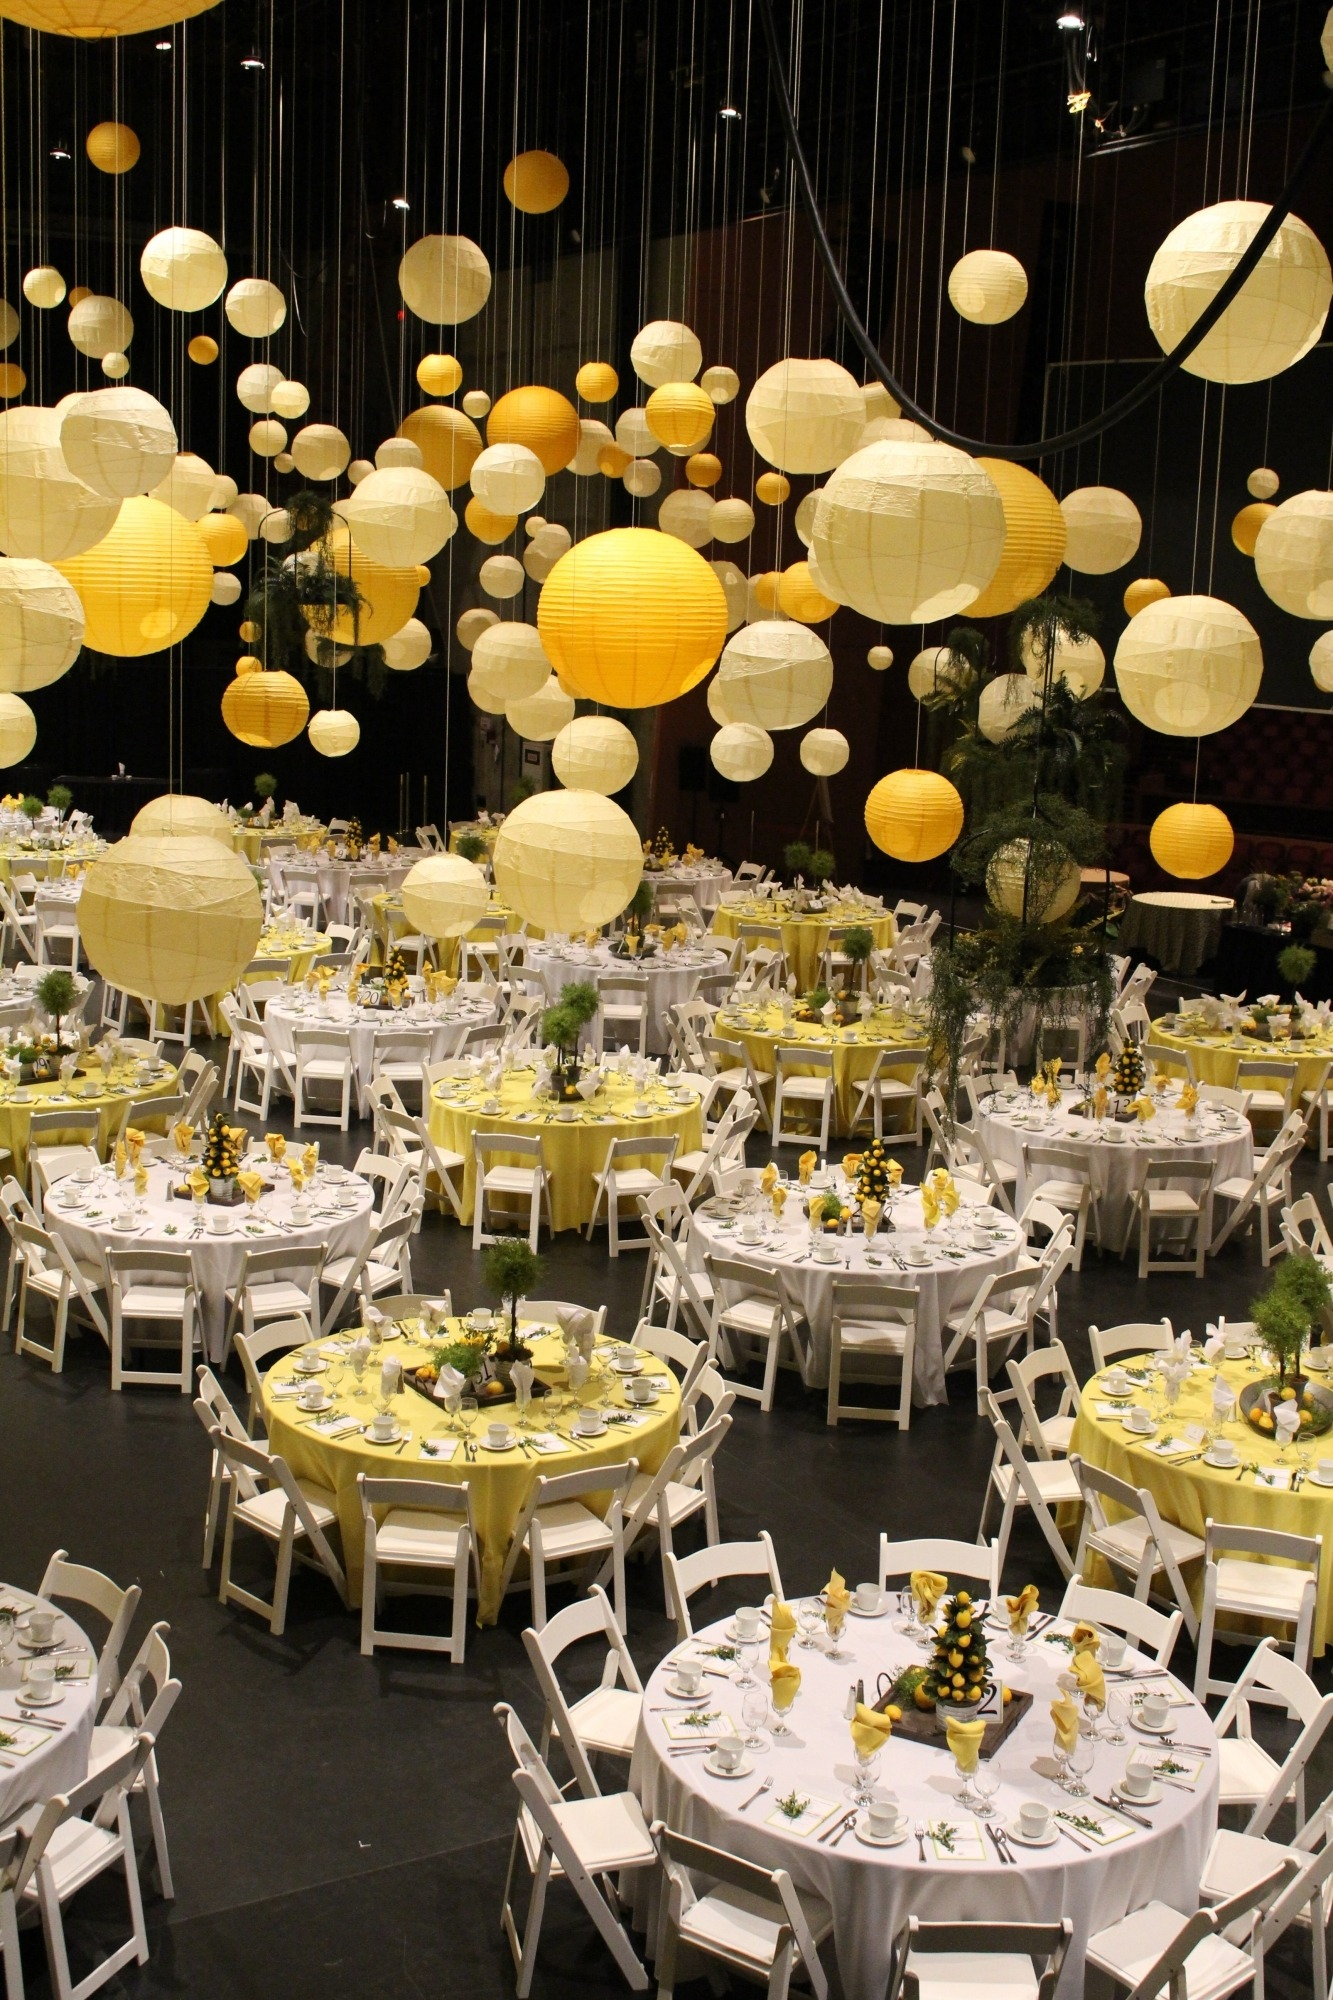 image of tables set up for a party with yellow balloons